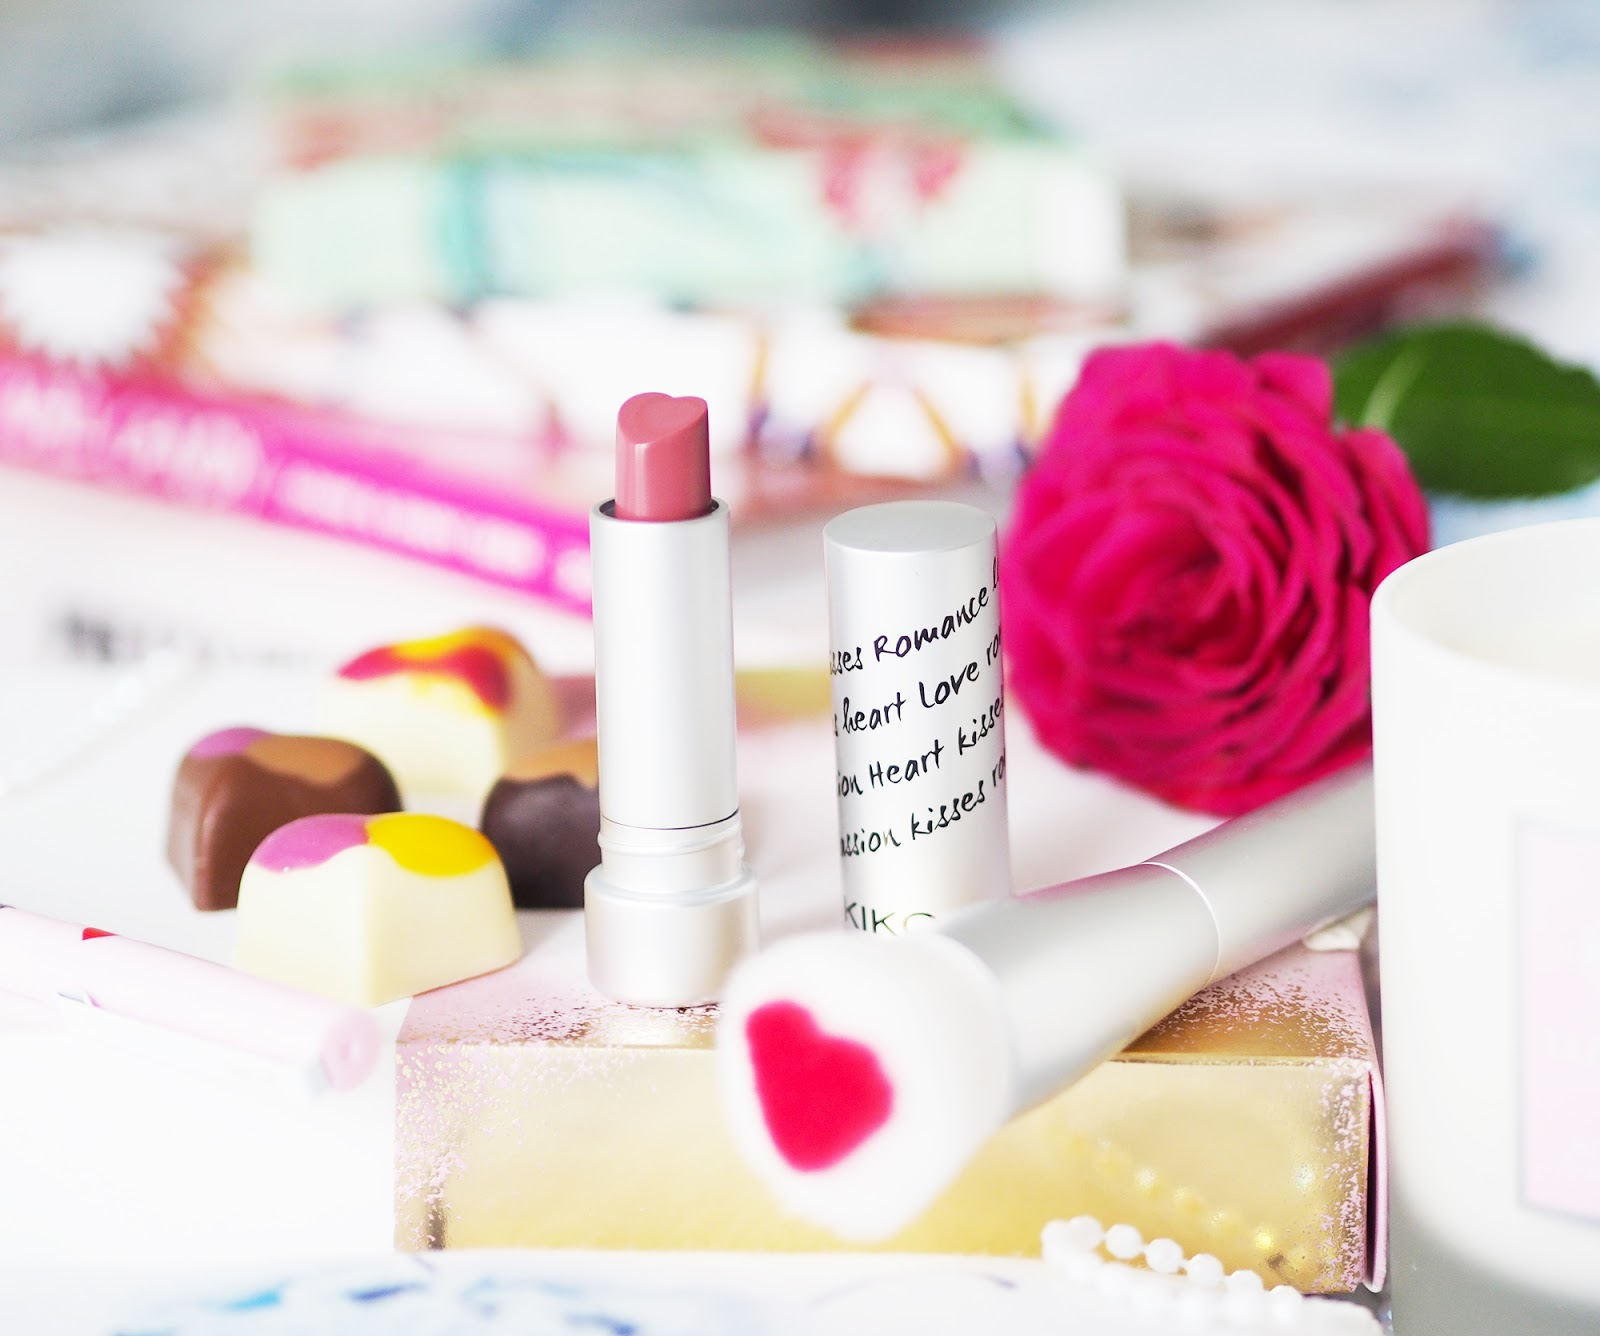 Valentine's gift ideas - Kiko heart shaped lipsticks